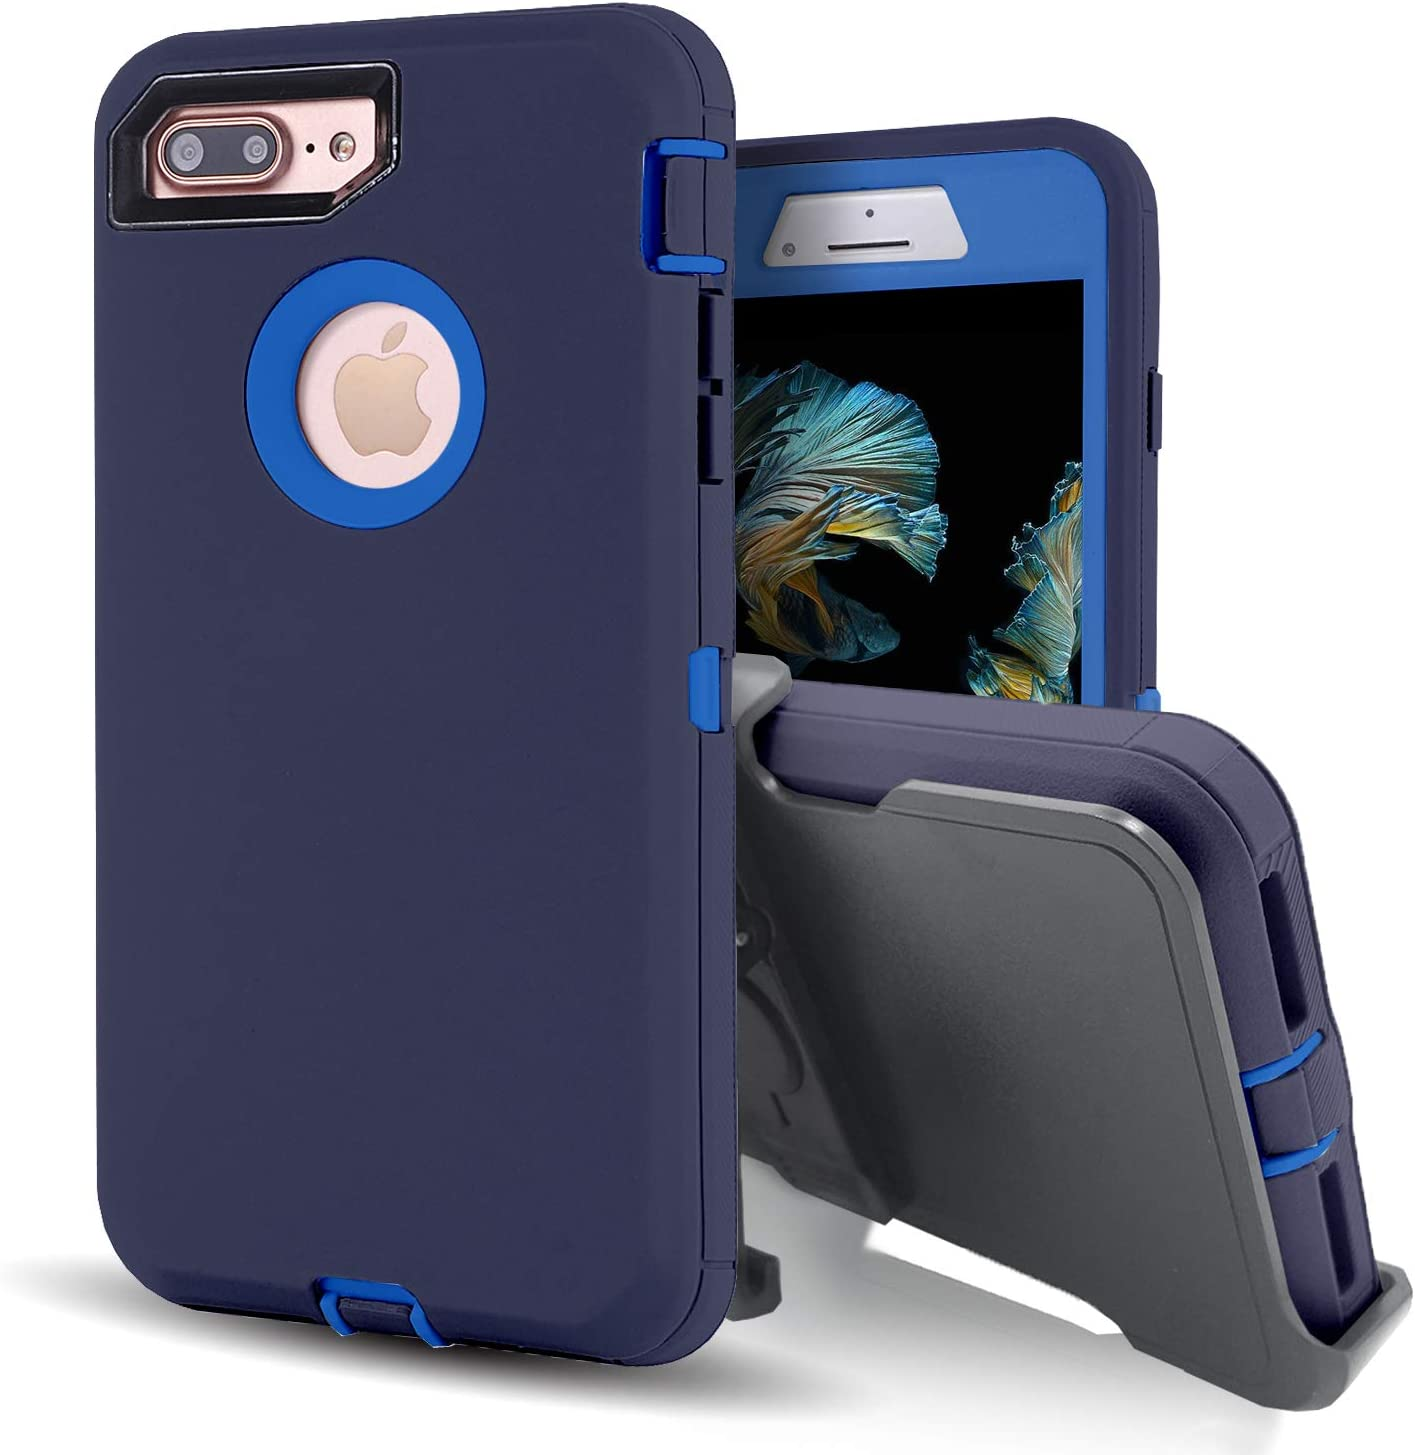 Vodico iPhone 8 Plus Case with Screen Protector,iPhone 7 Plus Protective Phone Cases for Men/Women, Heavy Duty Shockproof Defender Full Body Military Grade Stand Holster Cover with Belt Clip (Navy)